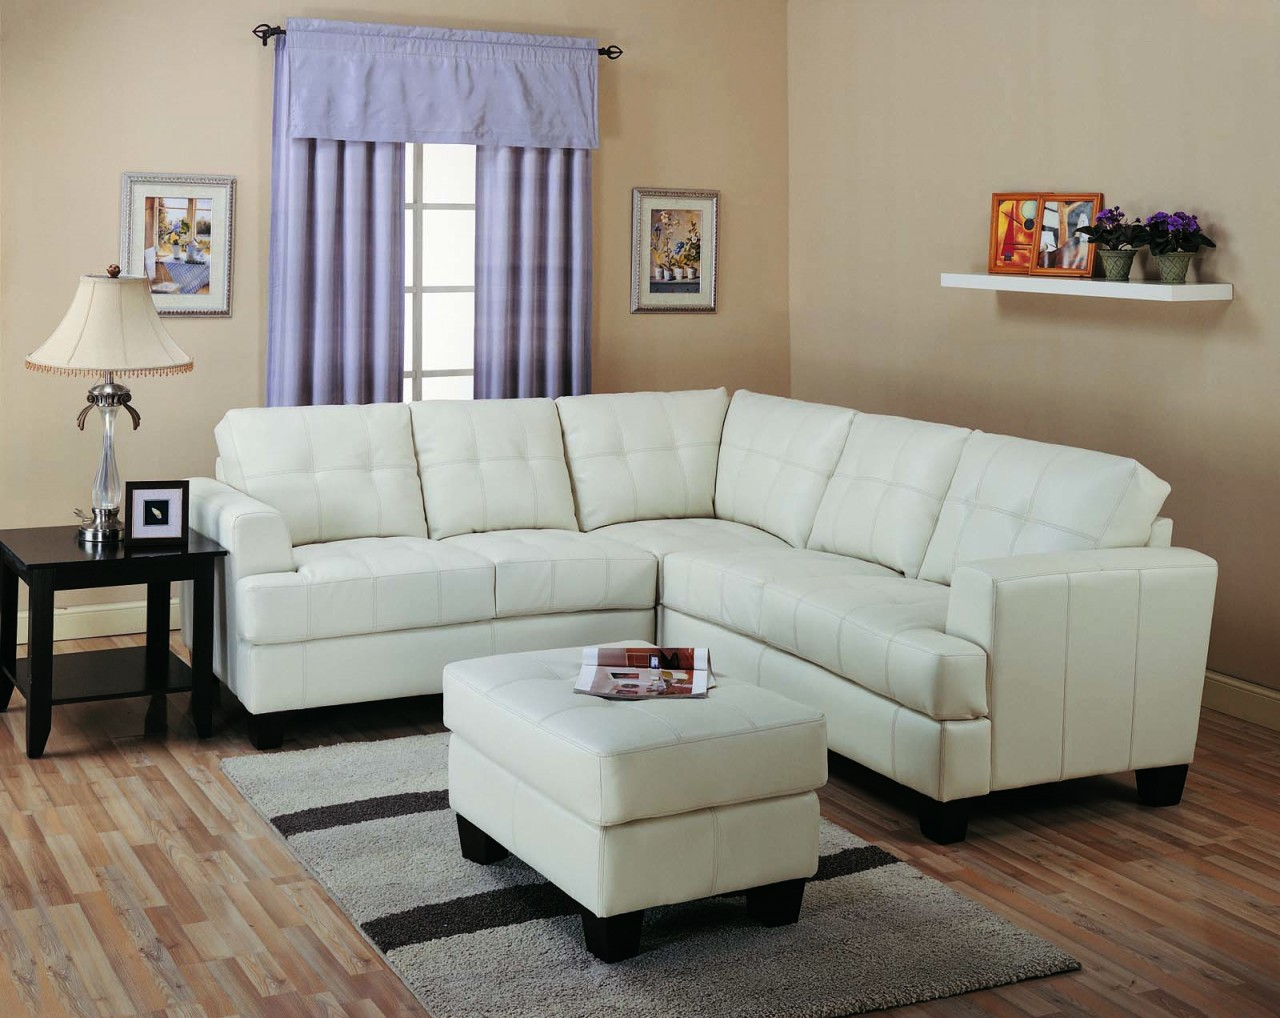 Types Of Best Small Sectional Couches For Small Living Rooms HomesFeed